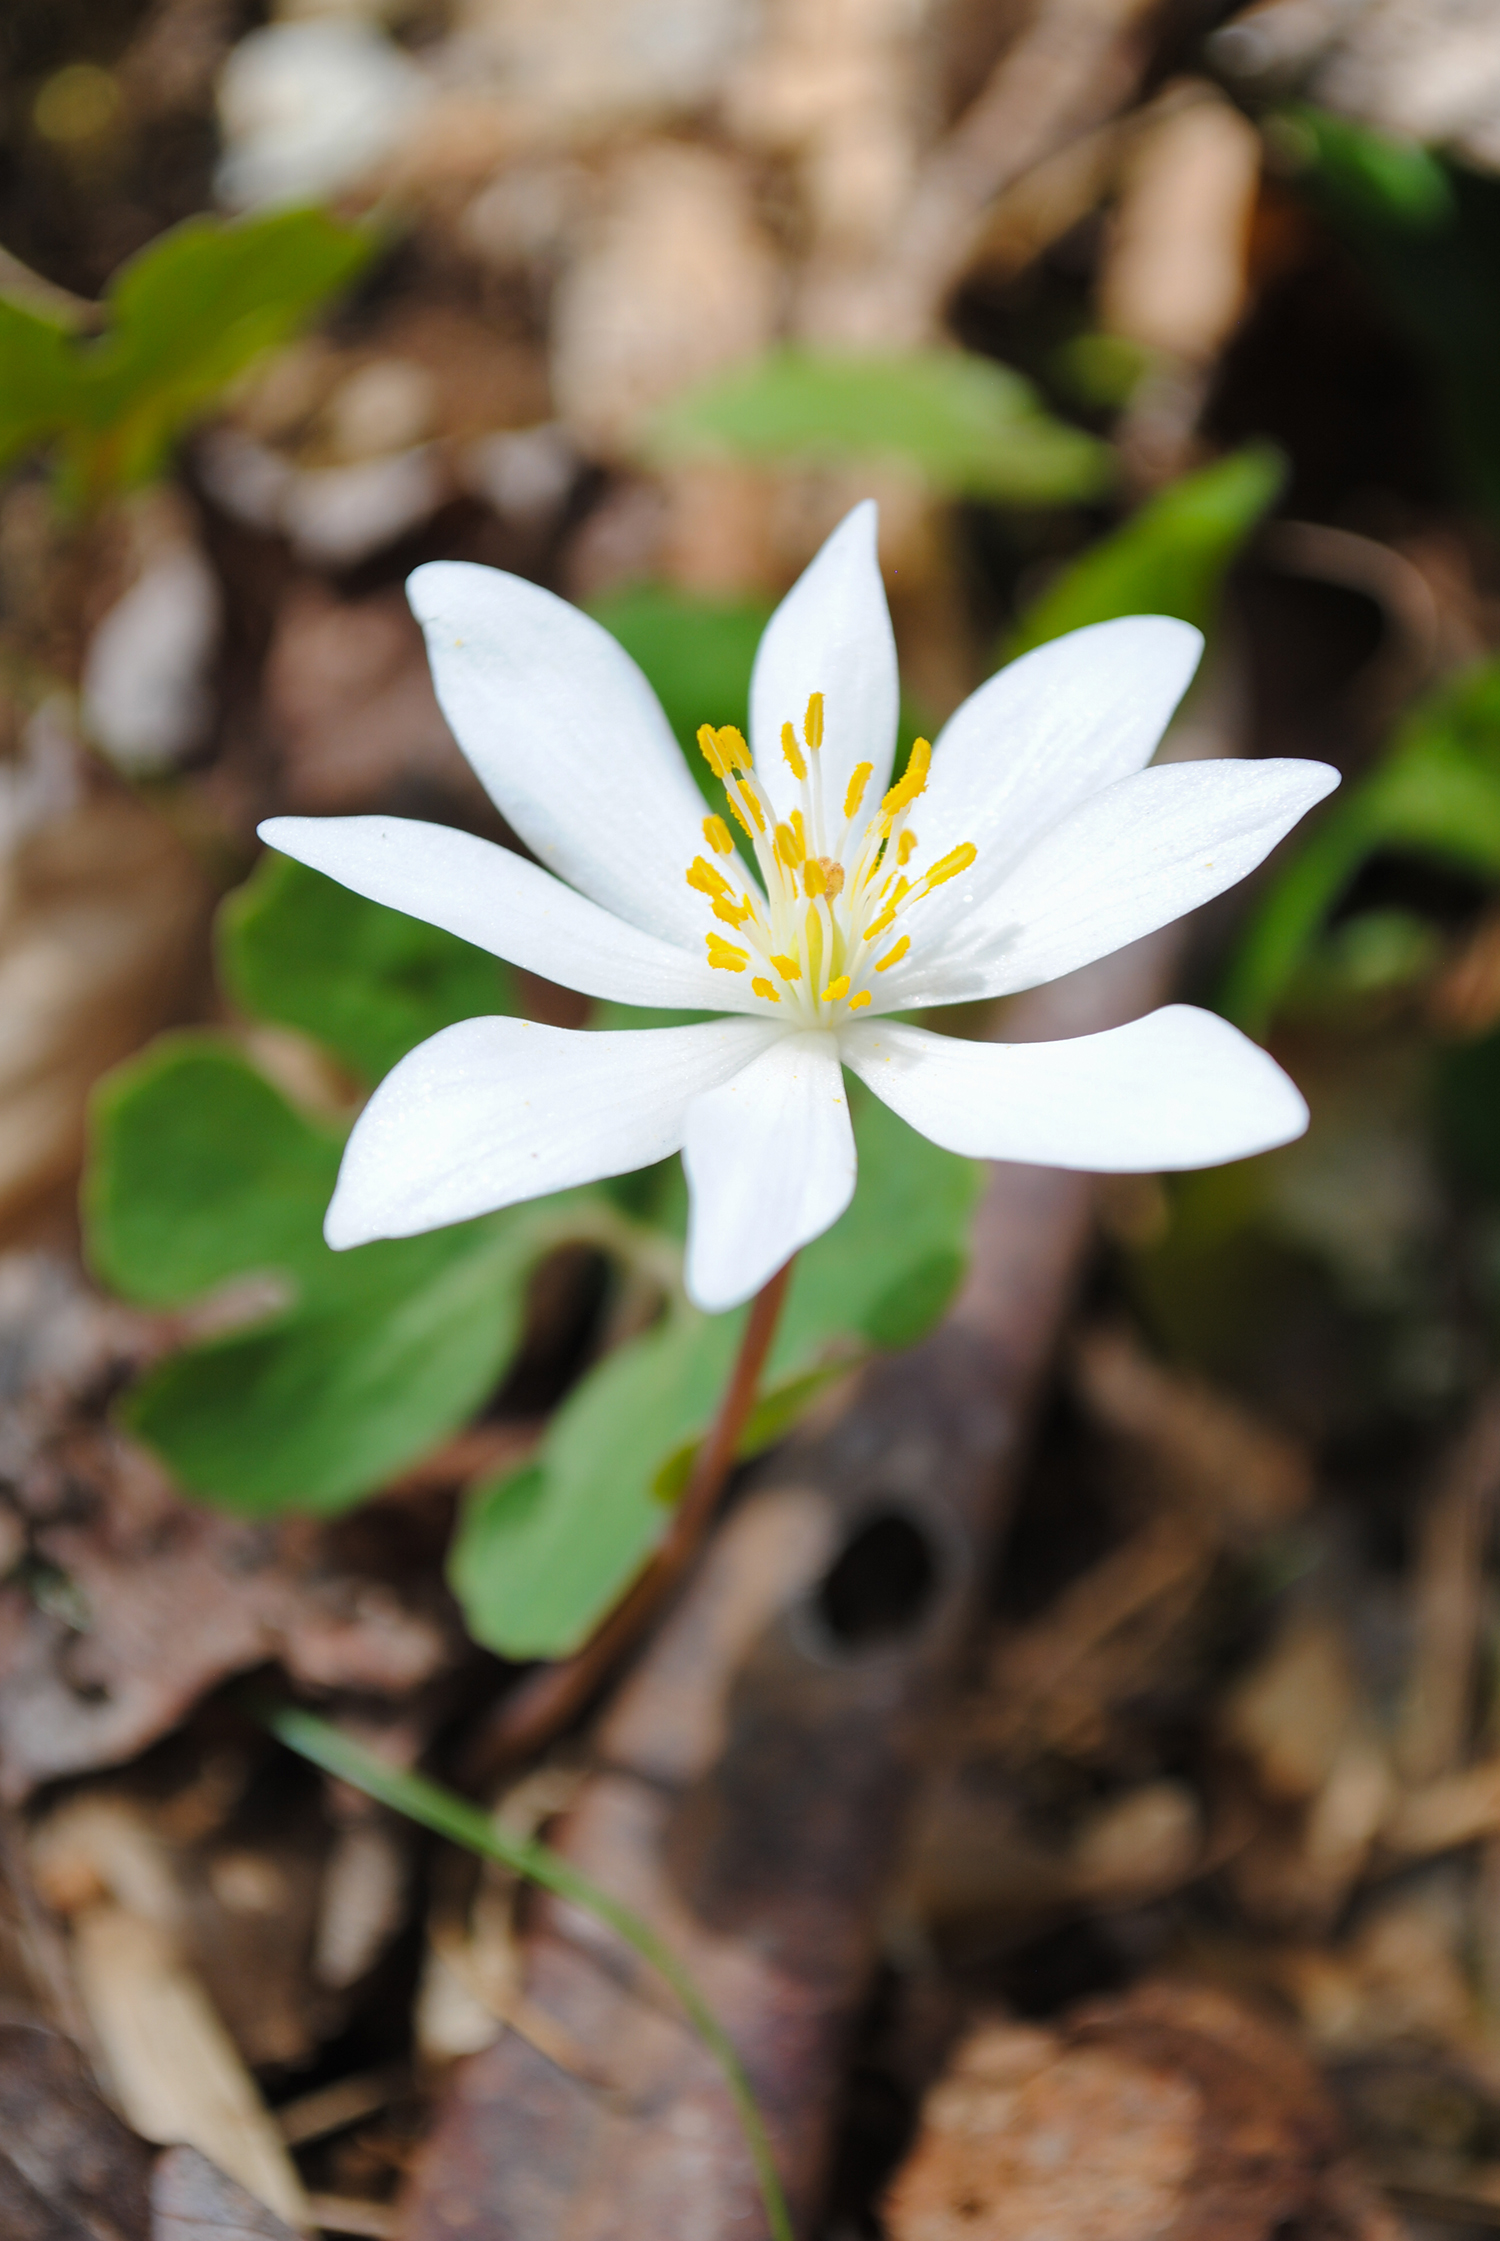 I assumed before we went that we would see Sanguinaria canadensis (bloodroot) everywhere, but I only saw one in flower. It was actually right as we were coming back to the parking lot.